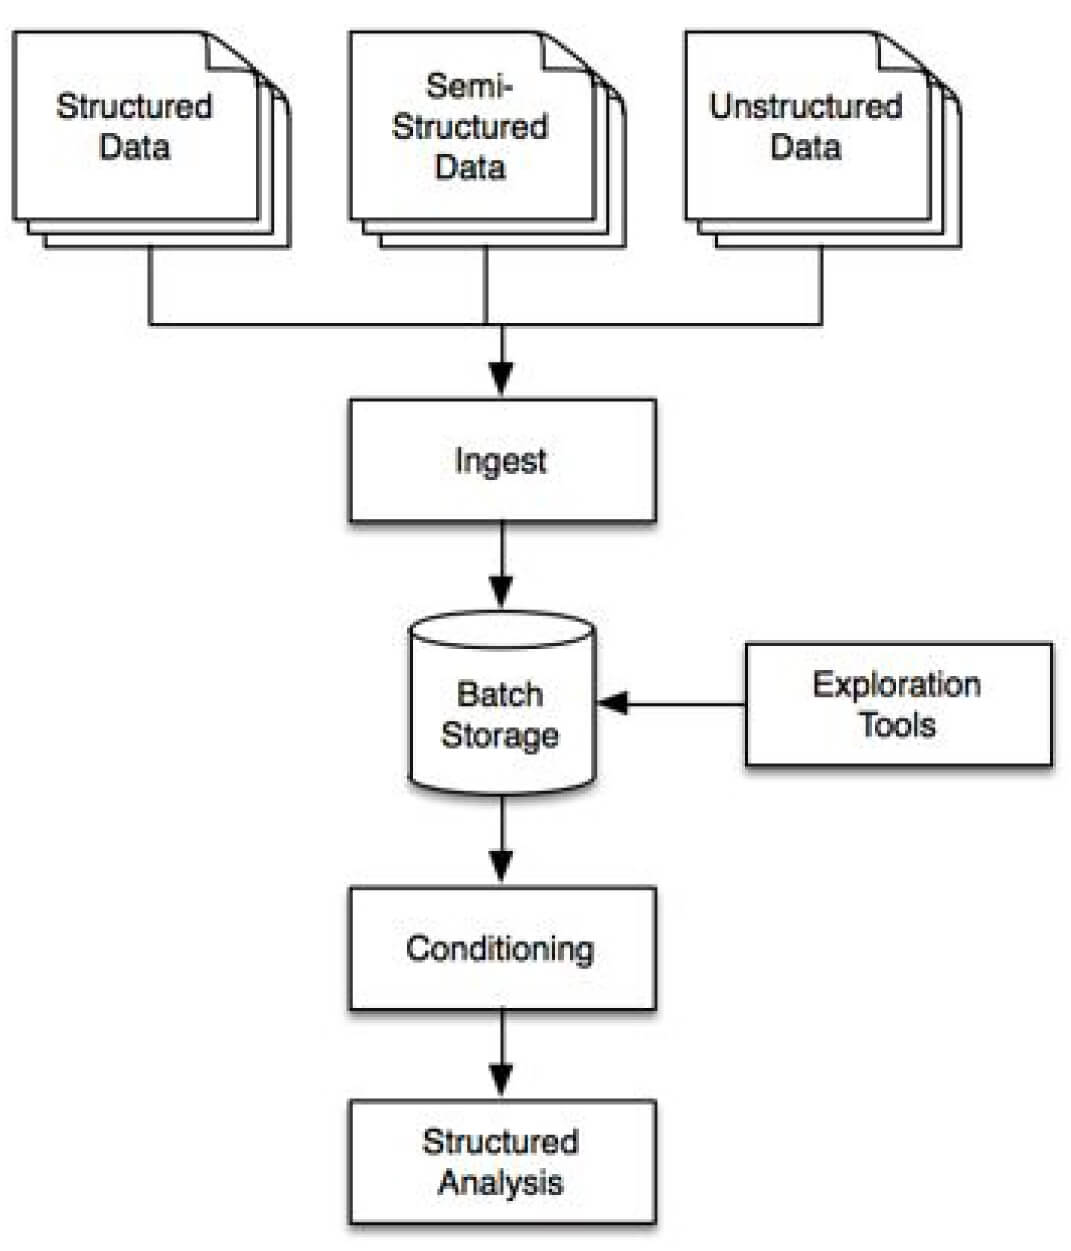 database architecture diagram 2000 chevy blazer vacuum big data patterns hadoop apps development